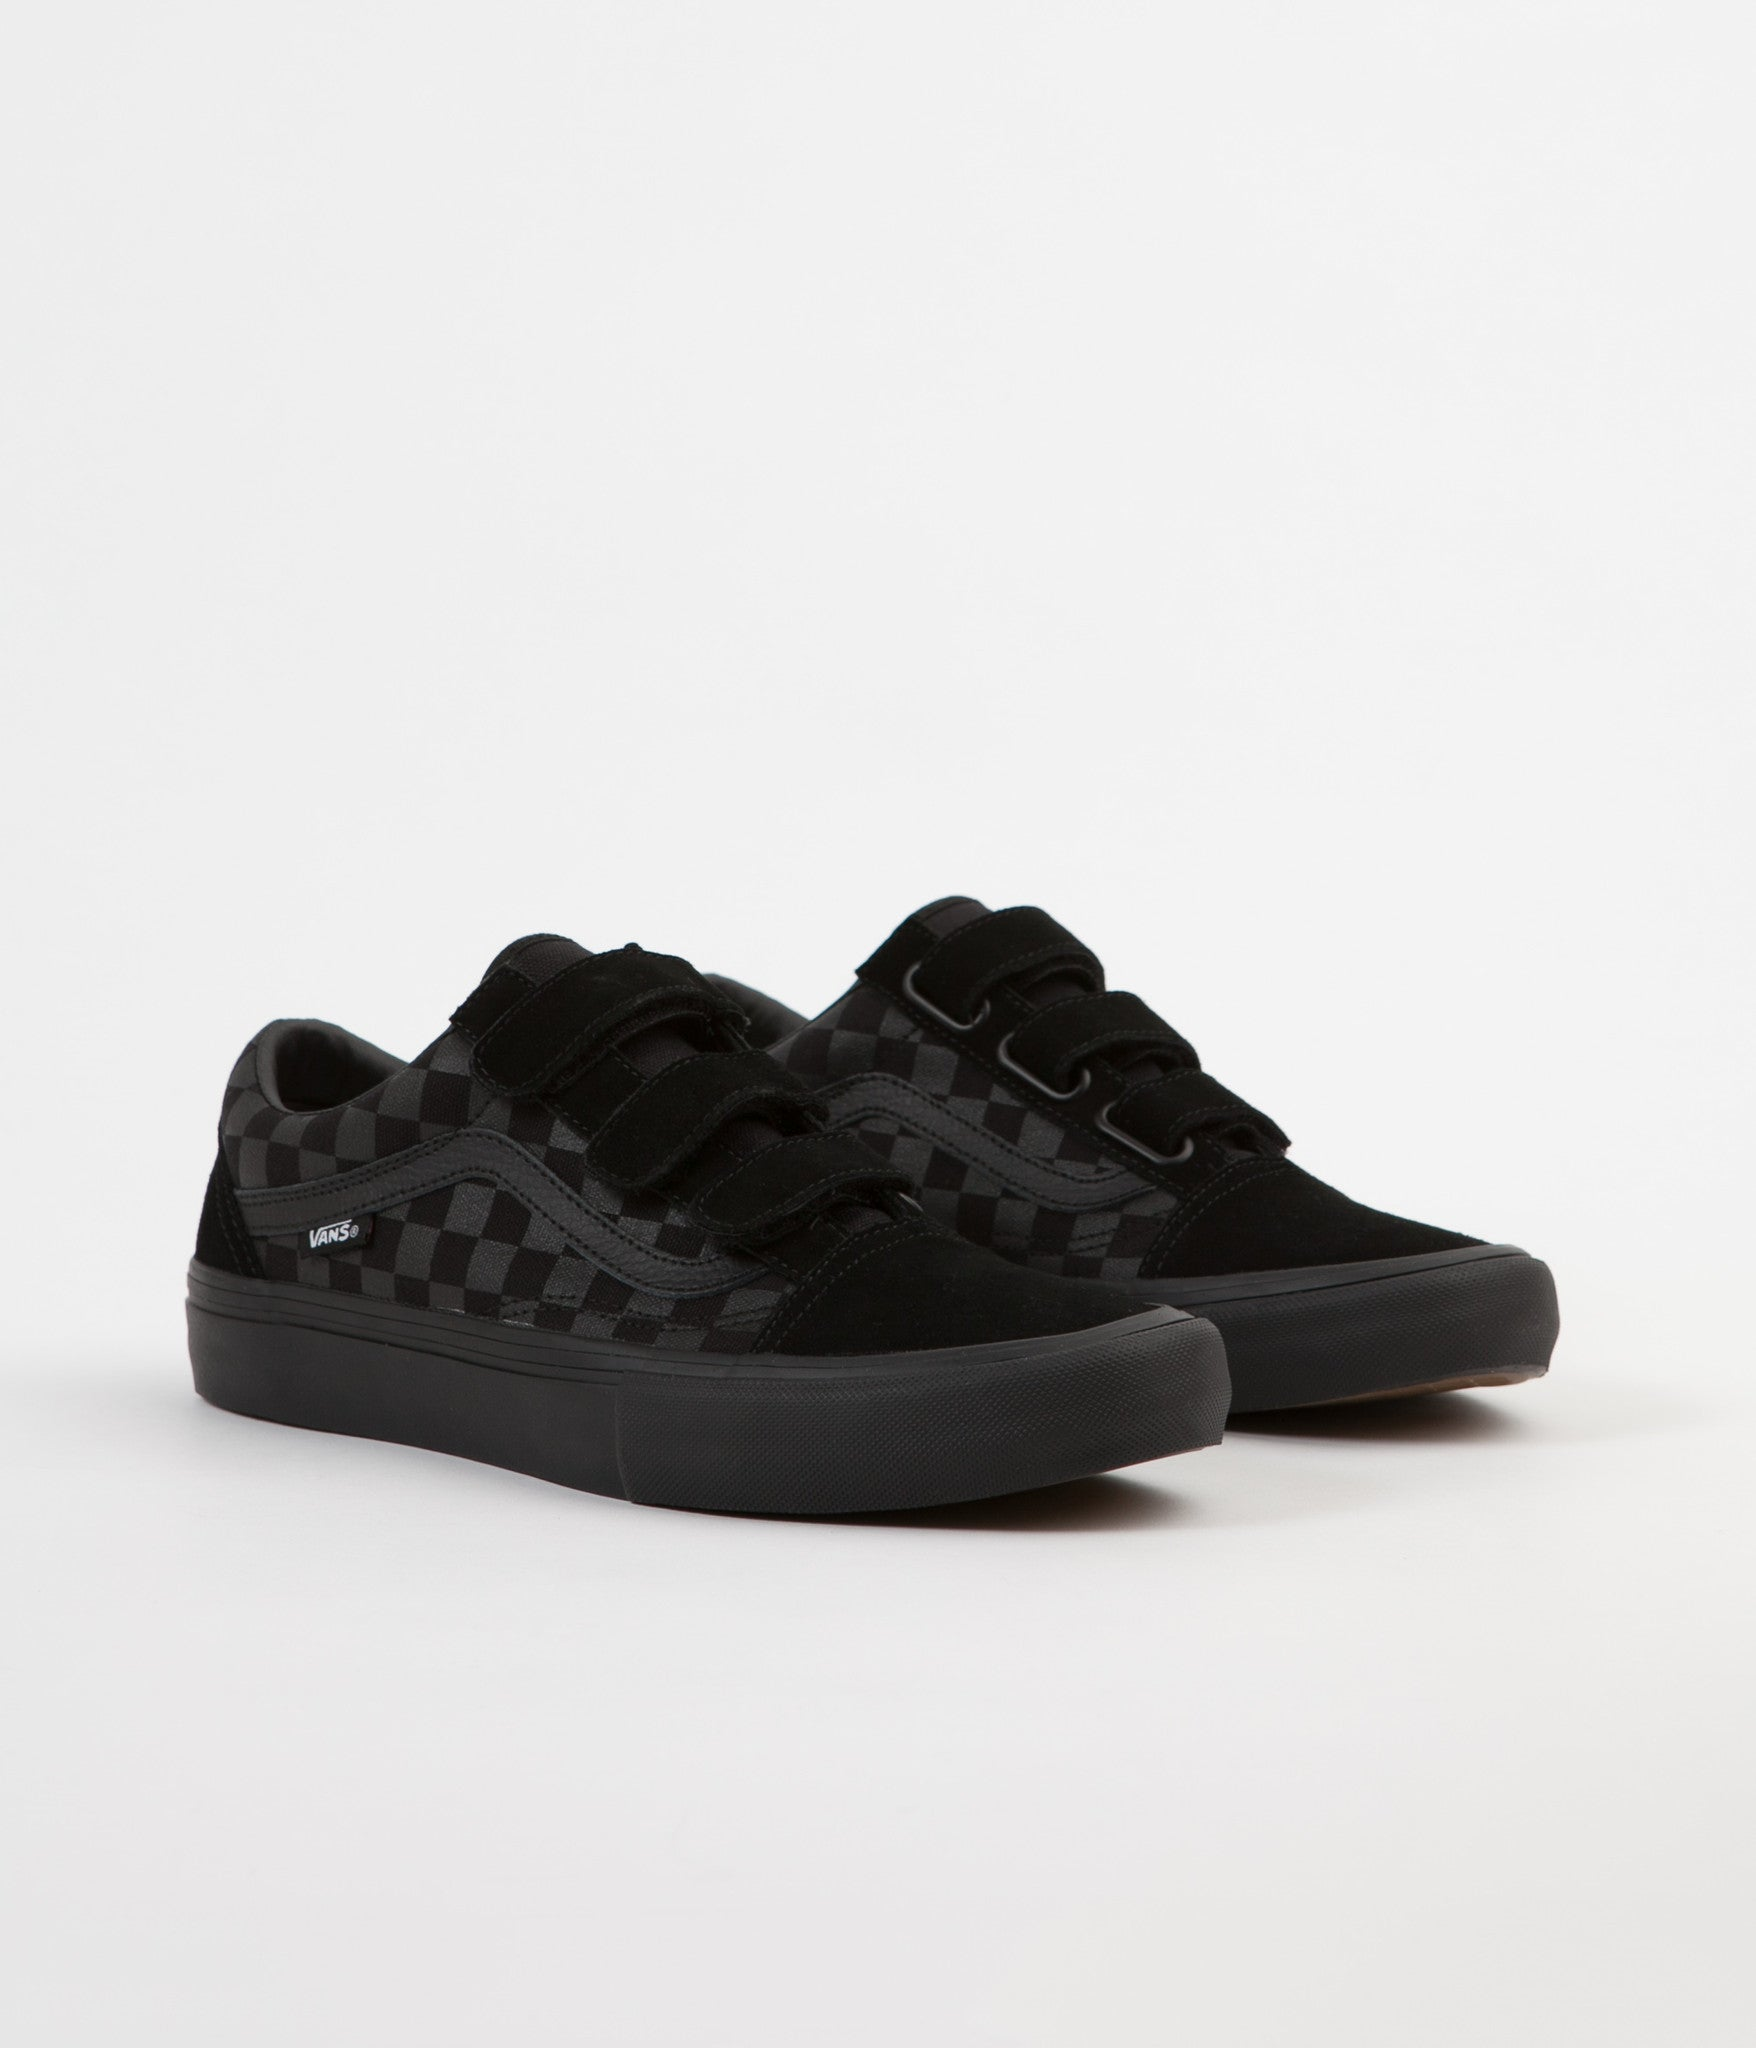 Vans Old Skool Priz Pro Rowan Zorilla Shoes - Black